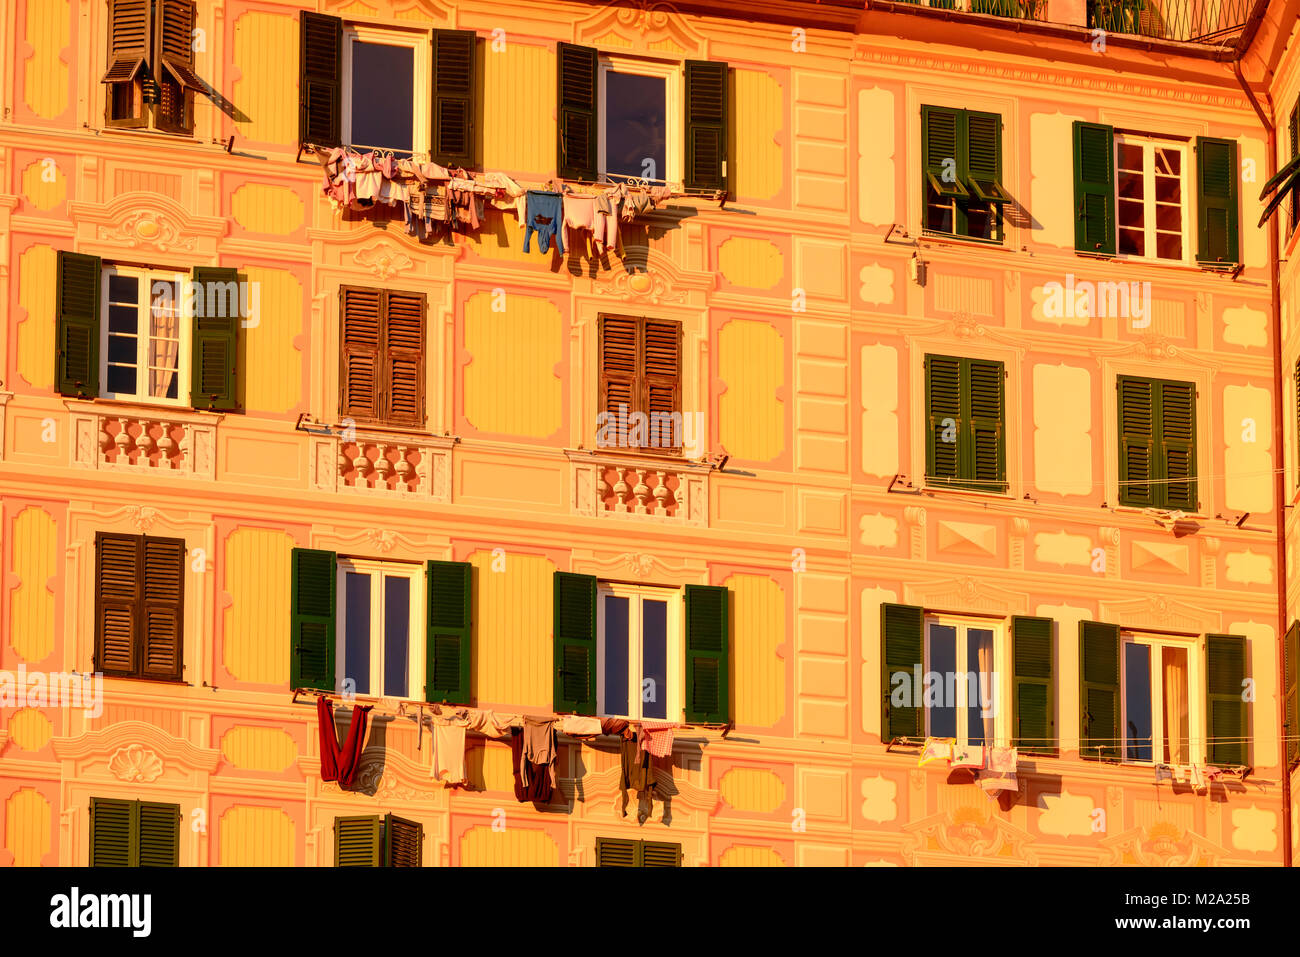 laundry historical stockfotos laundry historical bilder alamy. Black Bedroom Furniture Sets. Home Design Ideas